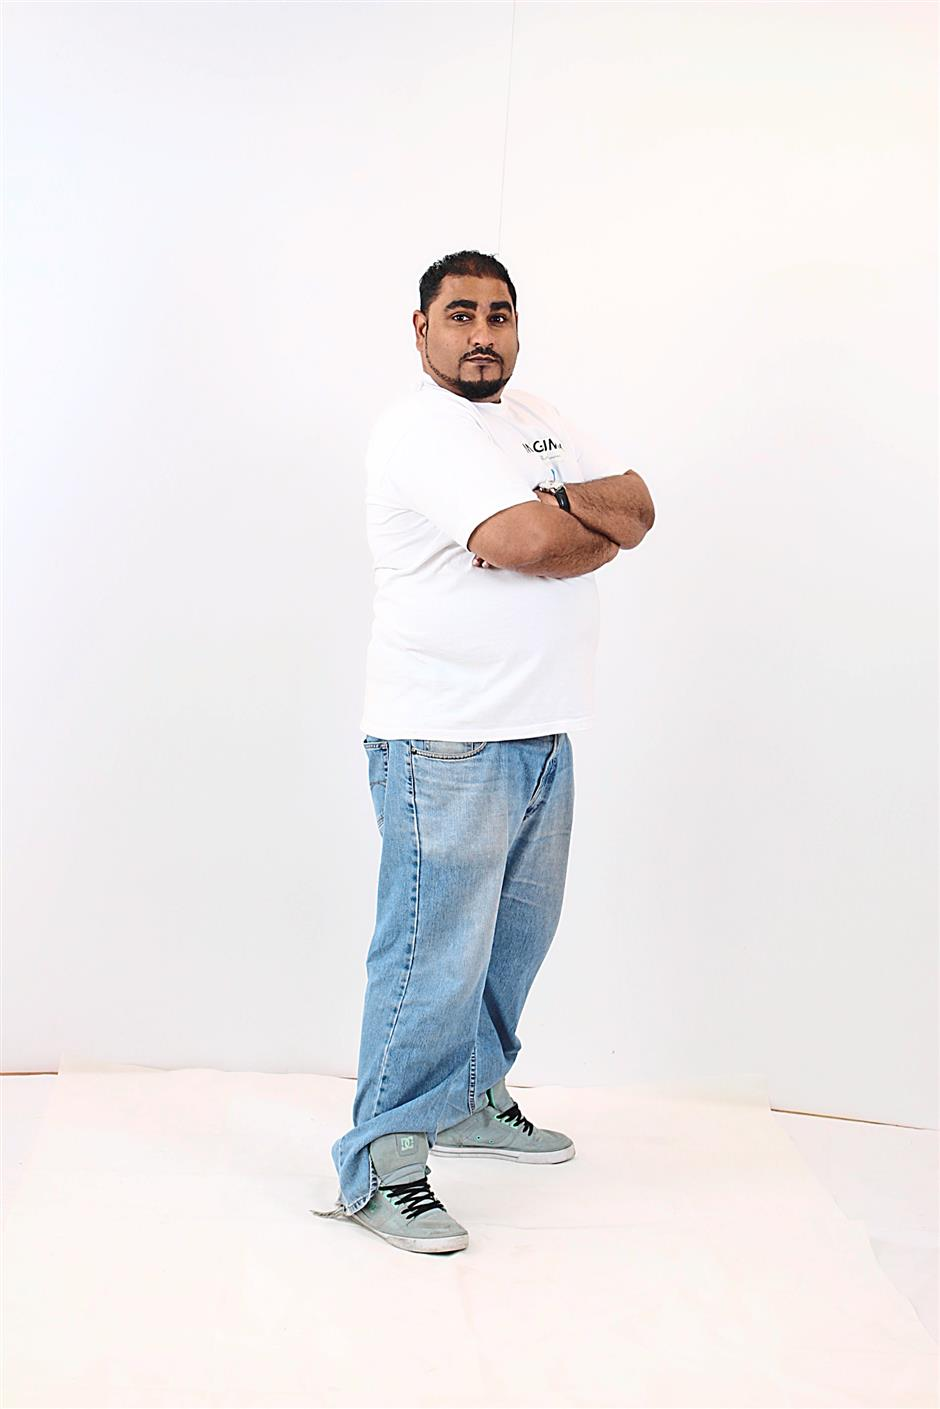 Kavin, who studied mechanical engineering, went on to carve a career as a radio deejay.